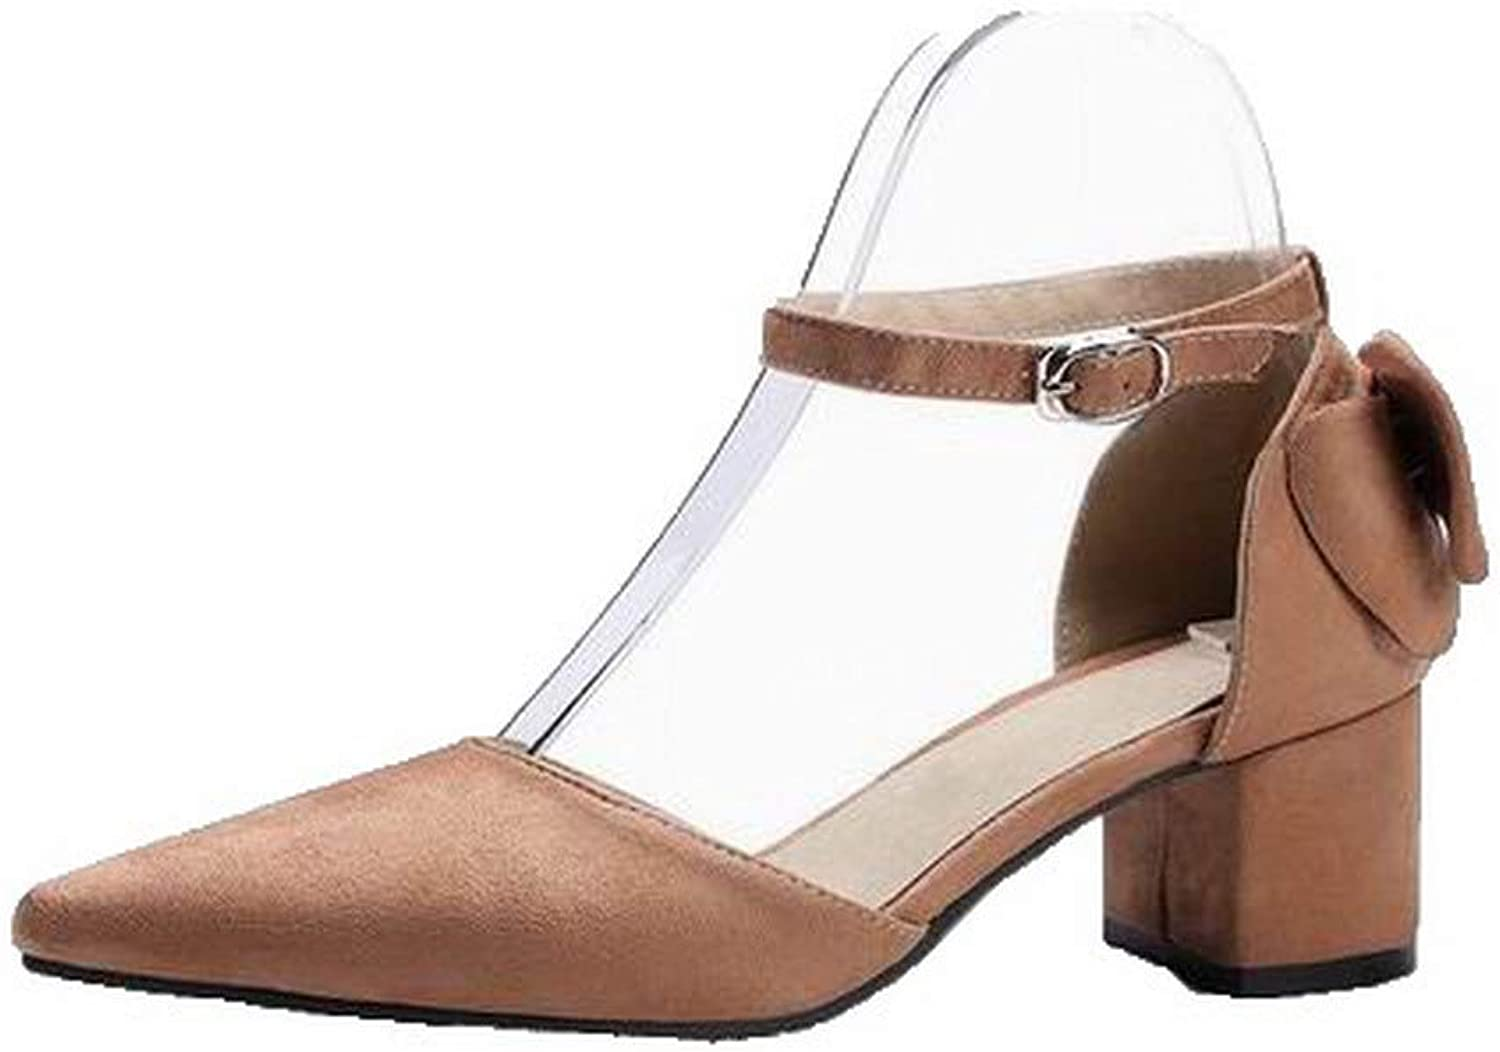 AllhqFashion Women's Imitated Suede Buckle Closed-Toe Low-Heels Sandals,FBULD015689